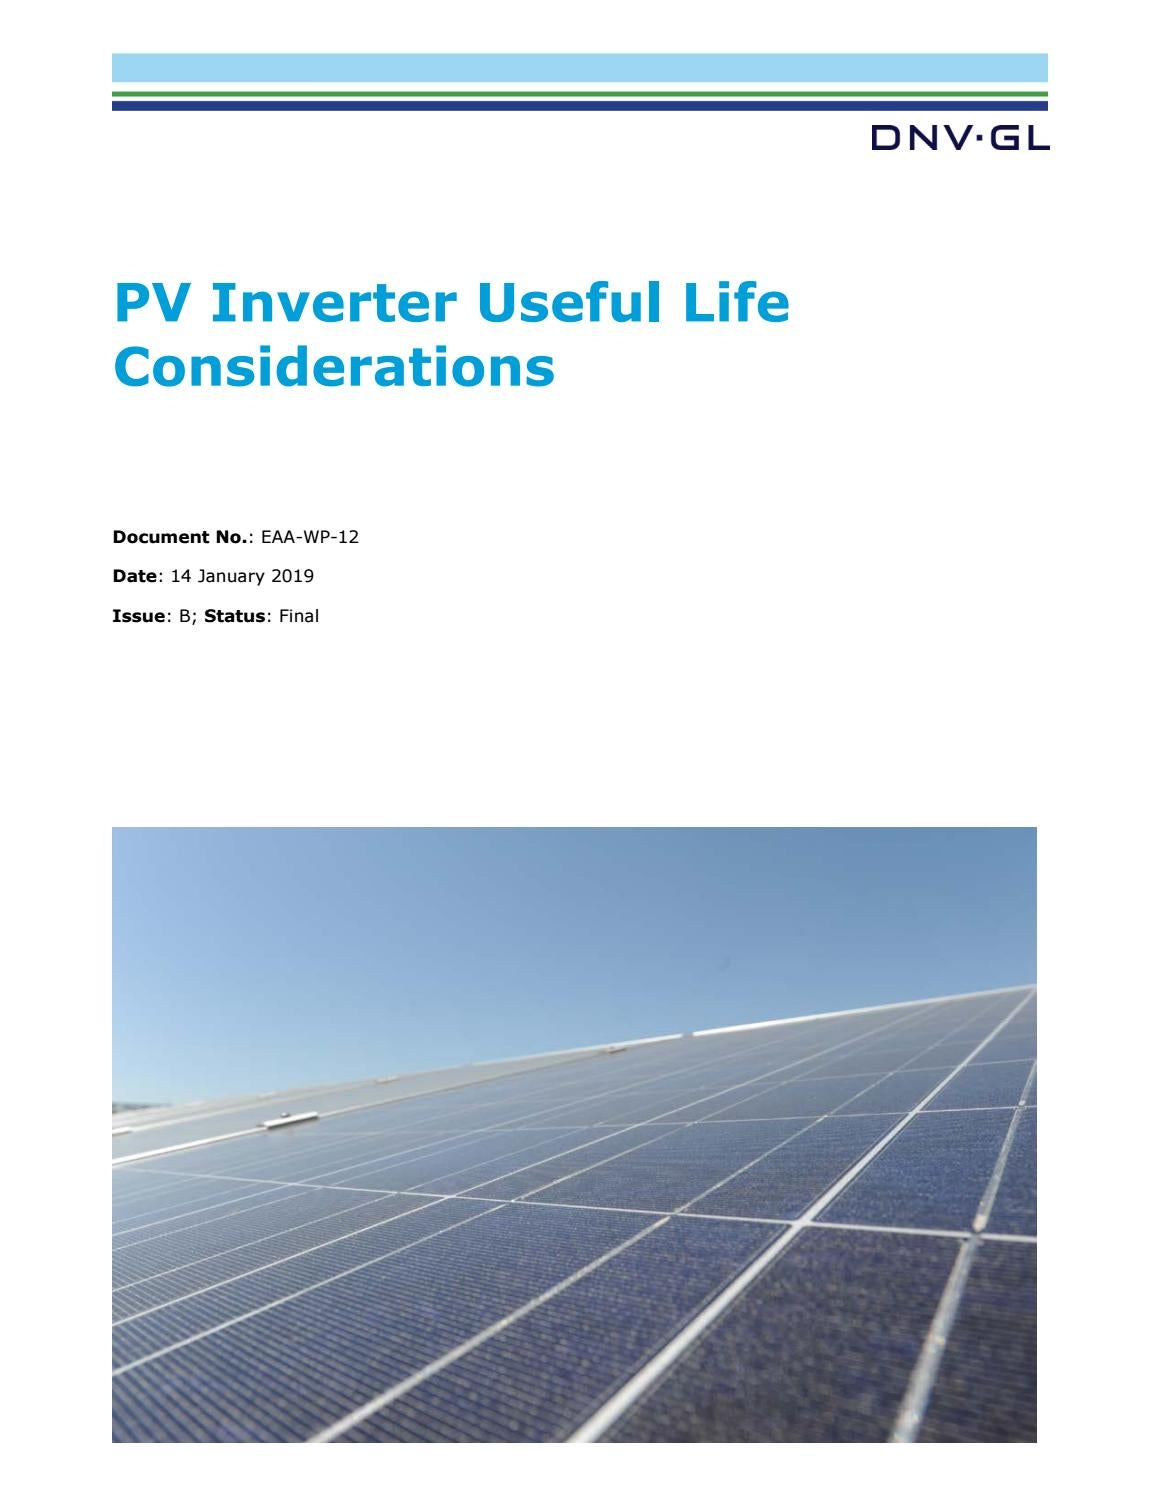 Pv Inverter Useful Life Considerations By Dnv Gl Issuu